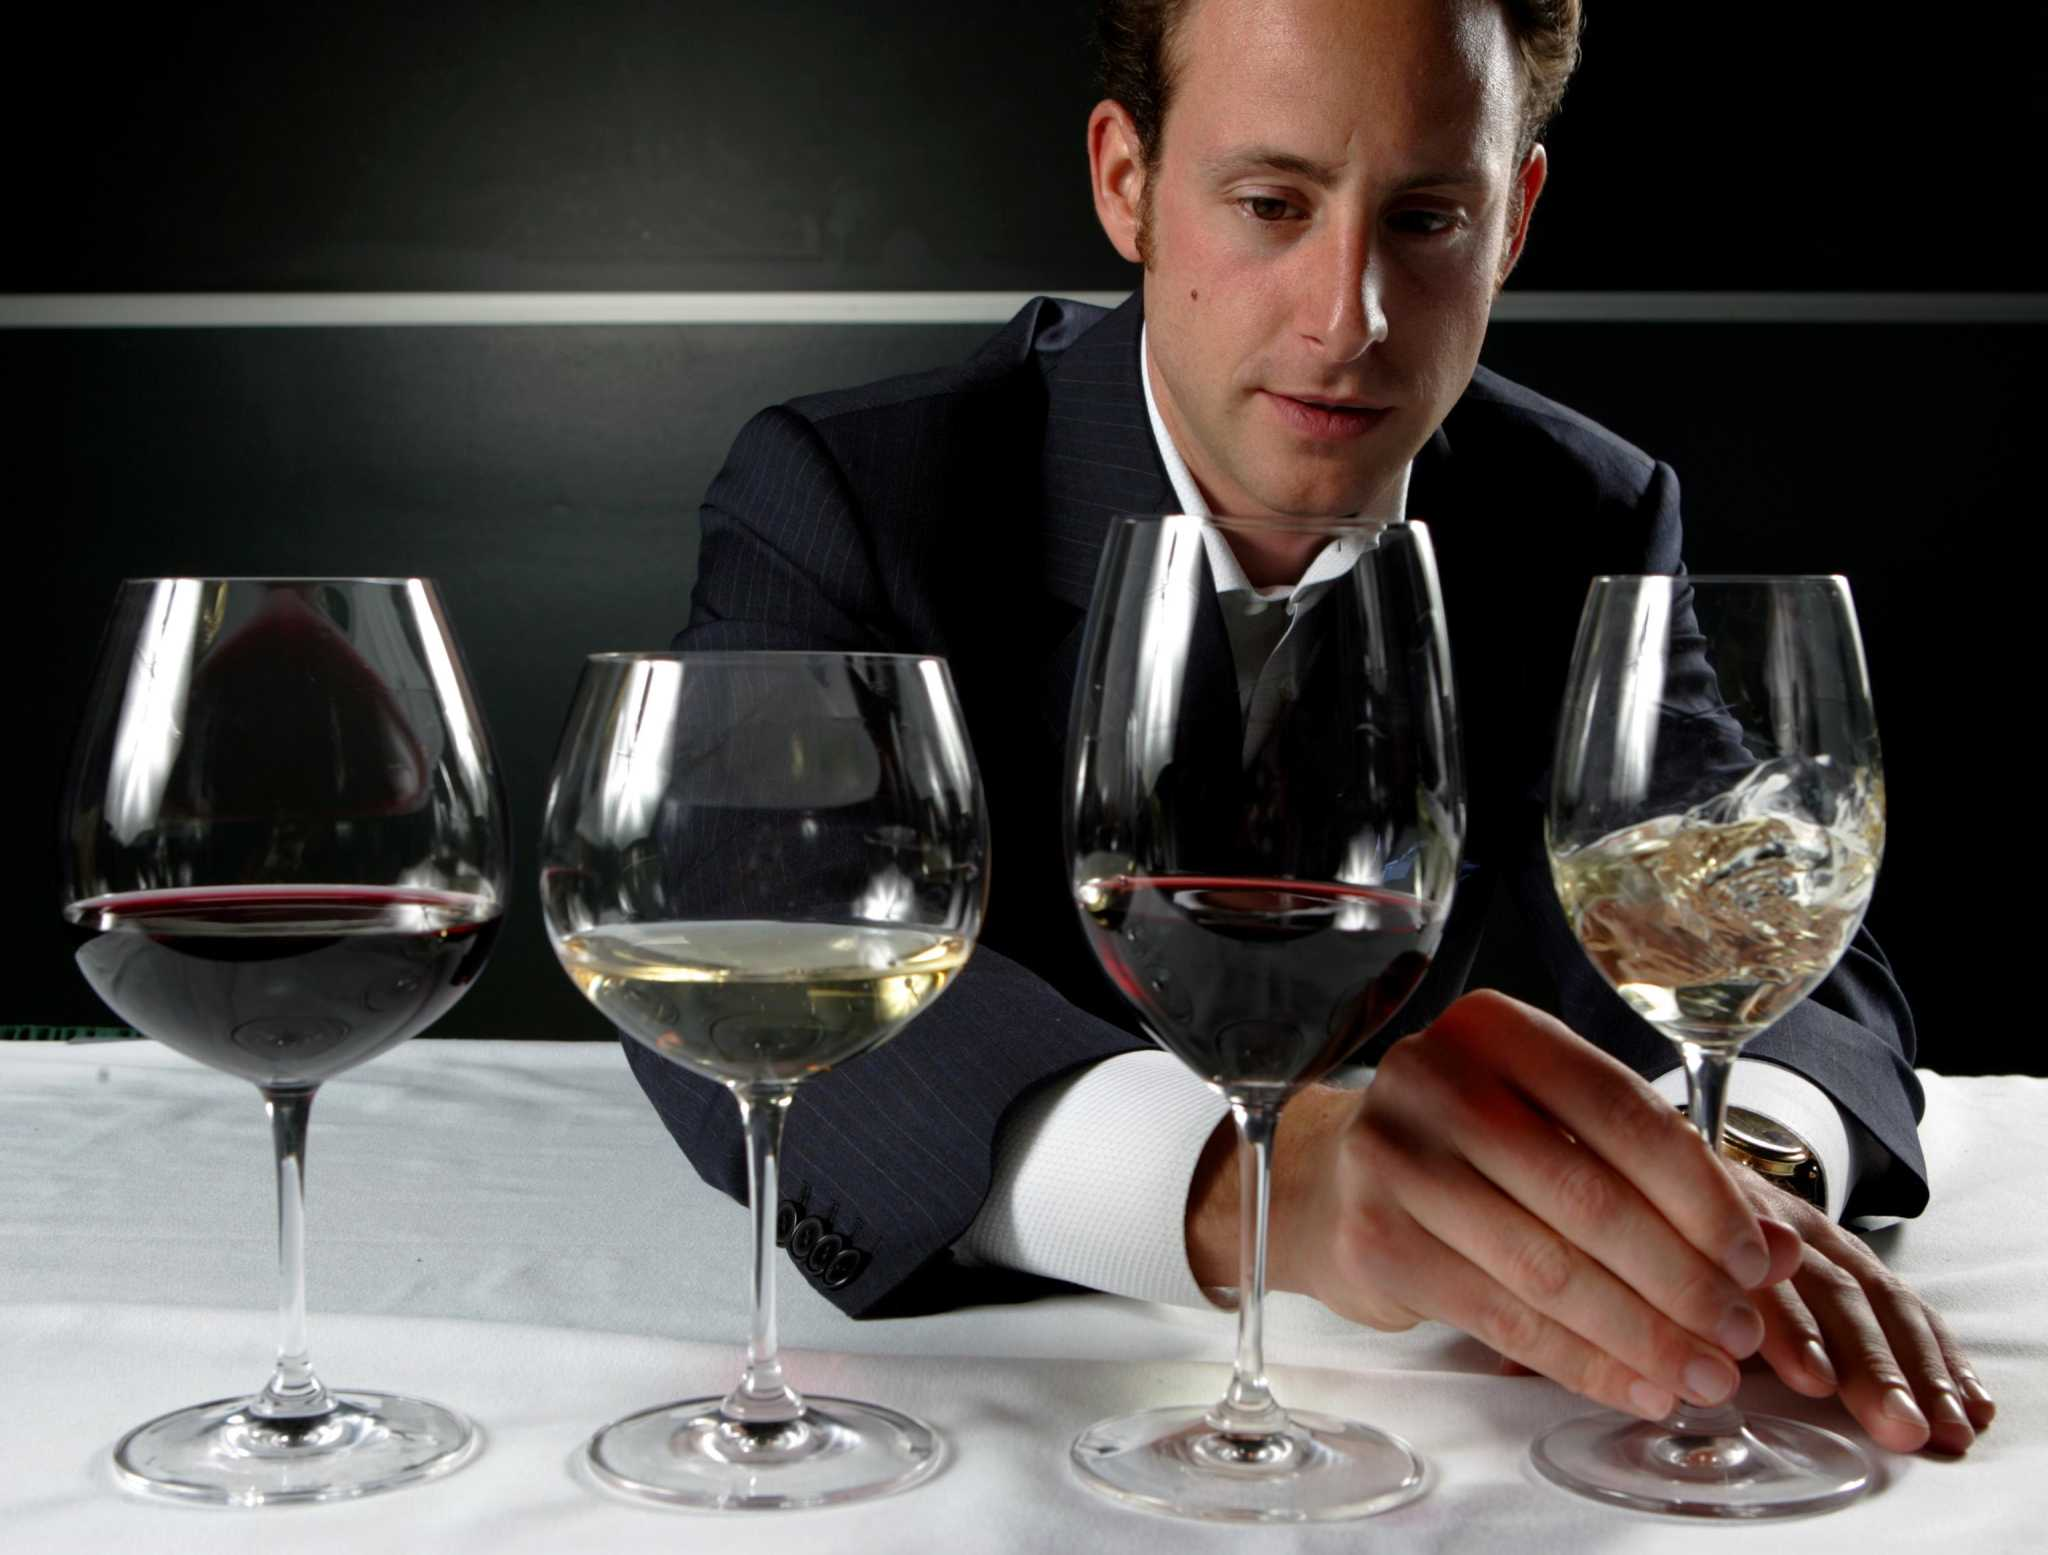 It's all in the glass: Chronicle writer finds wine's flavor hinges on its stemware.